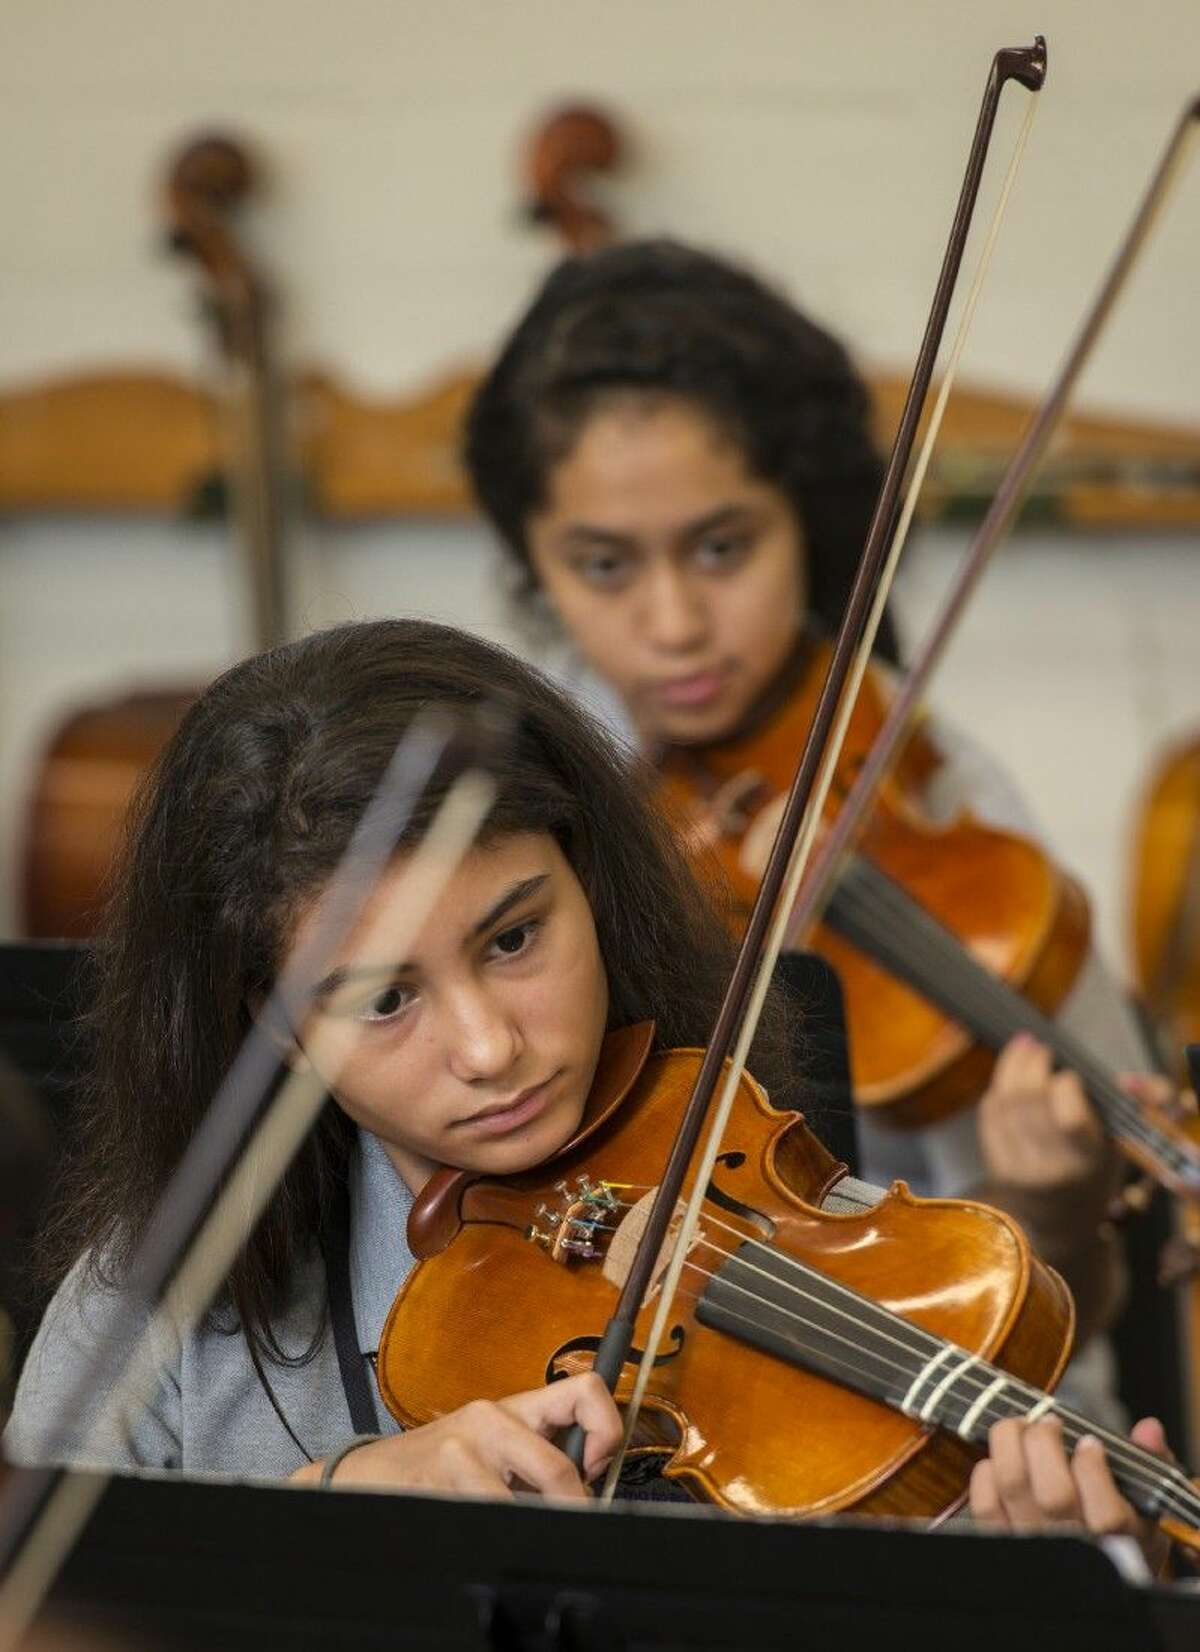 Orchestra students practice at Johnston Middle School, Oct. 1, 2014. Johnston Middle School is a performing and visual arts magnet school.